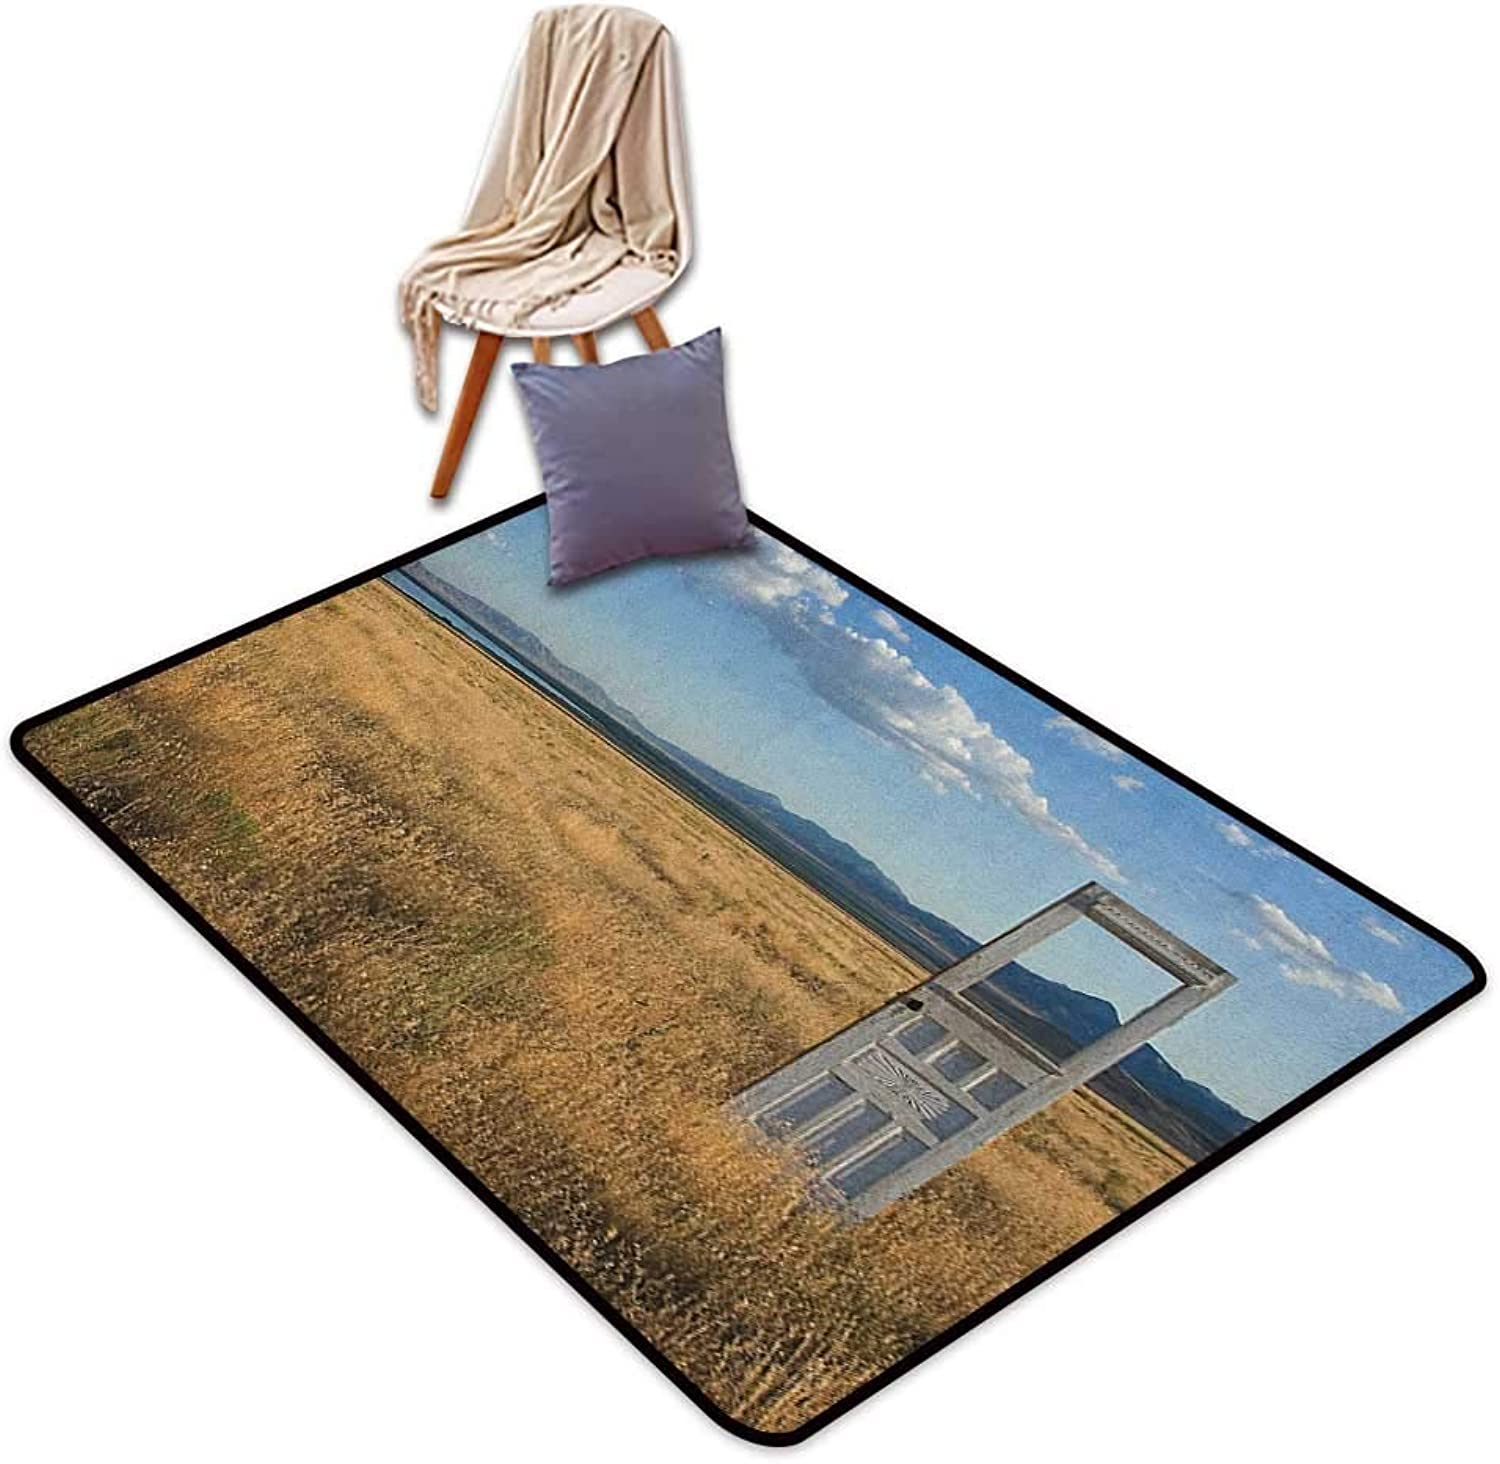 Interior Door Rug Bathroom Rug Slip Antique Old Door Standing Alone in Field with Mountains Summer Sky Surreal Door Rug for Internal Anti-Slip Rug W5'xL7'